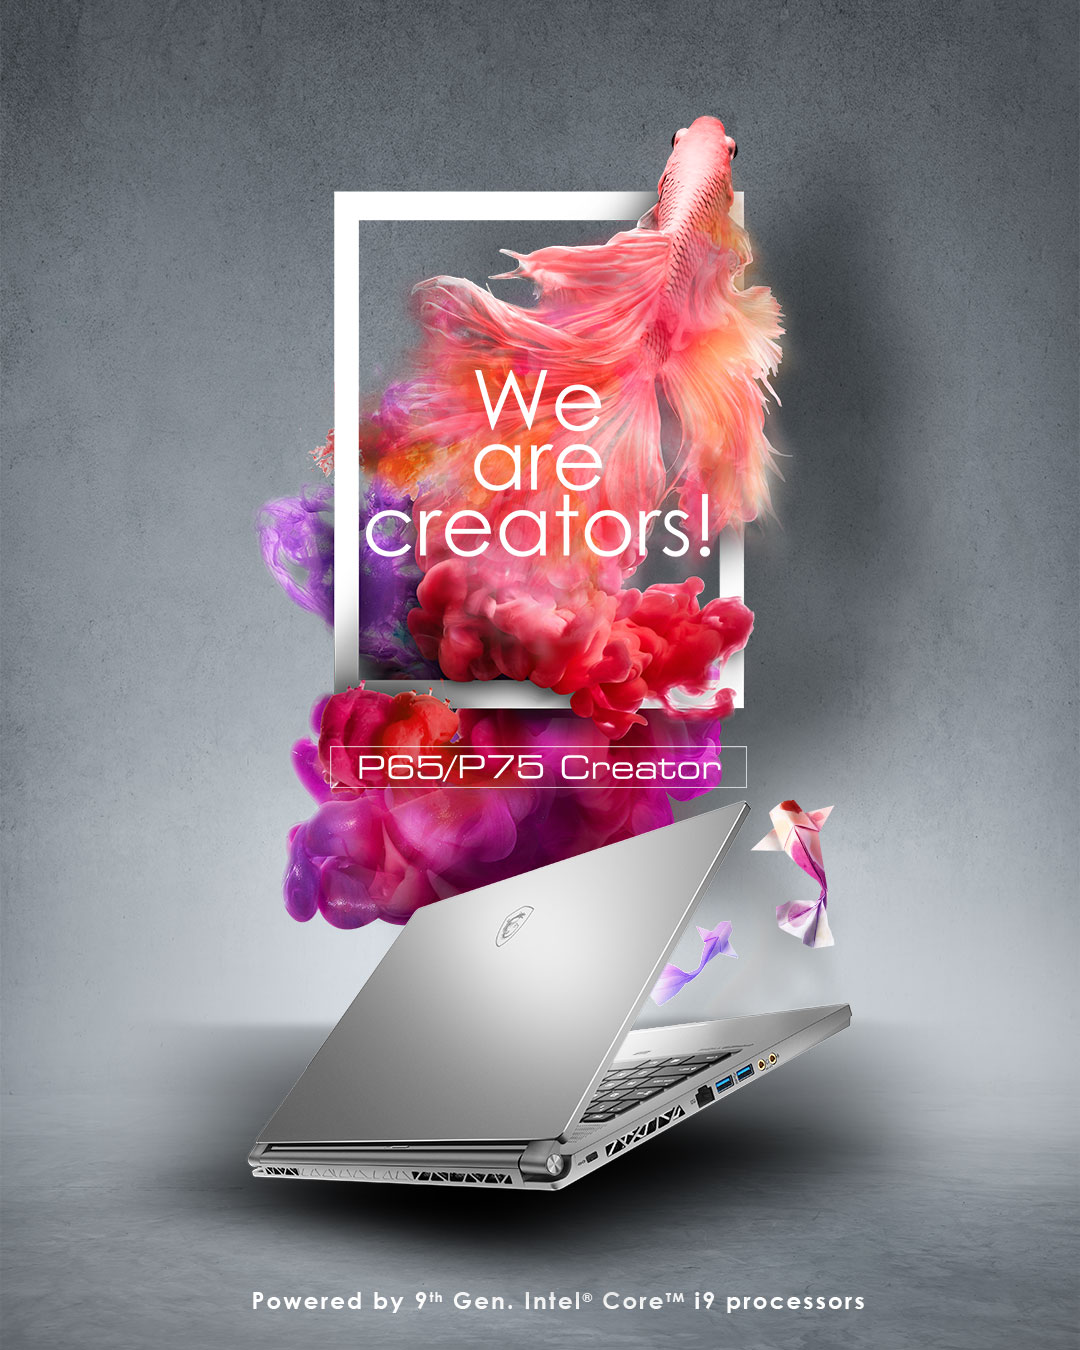 We are creators! P65 / P75 Creator